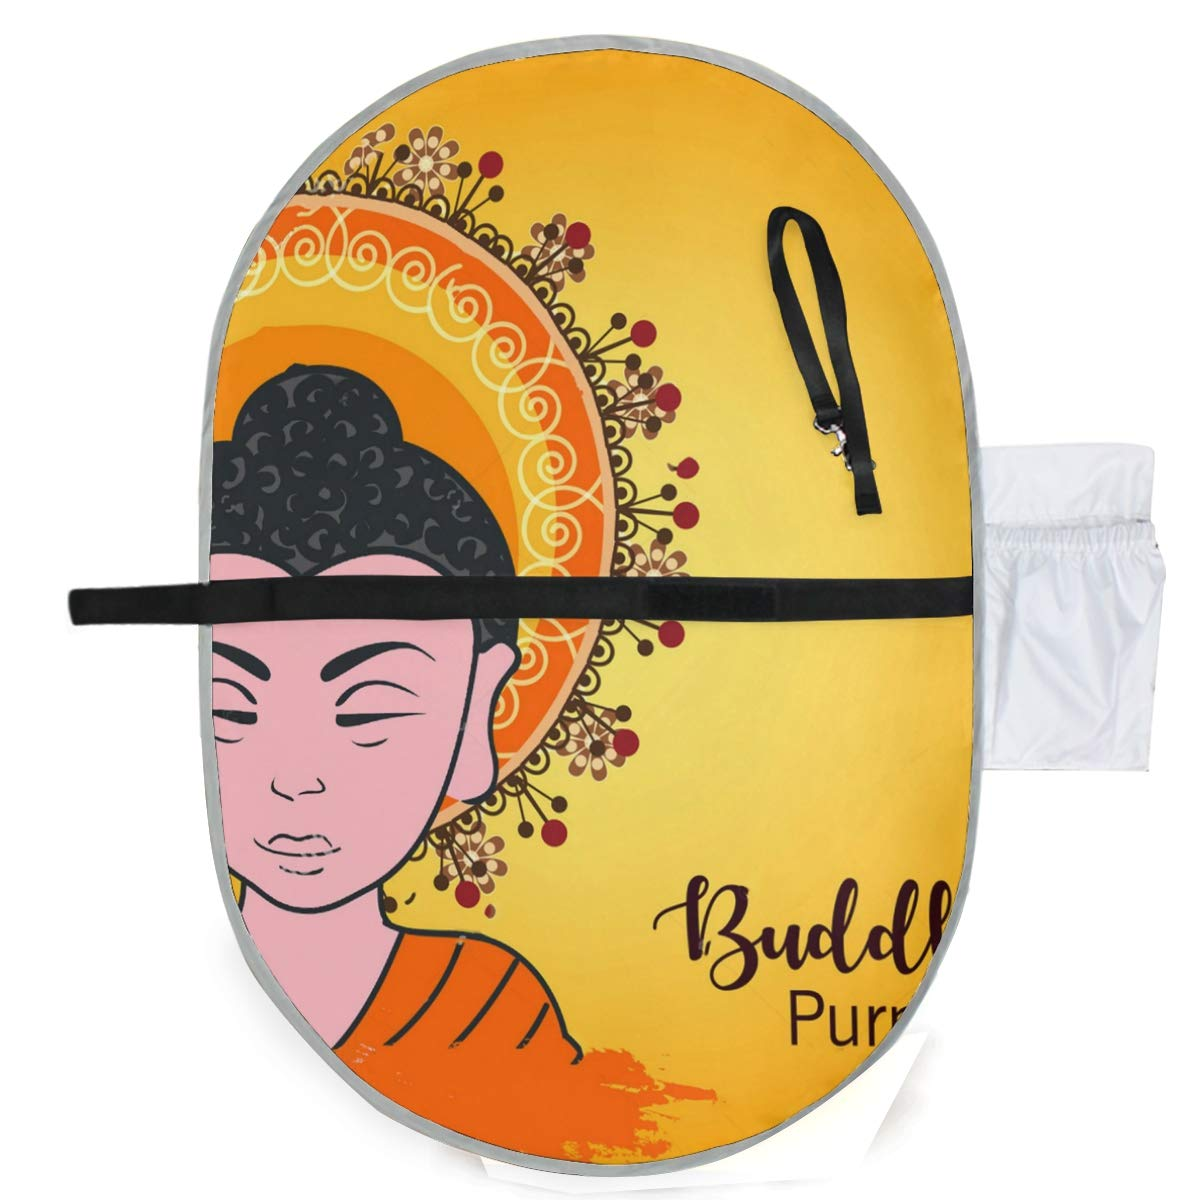 SLHFPX Changing Pad Happy Buddha Baby Diaper Urine Pad Mat Vintage Kids Urinal Mats Sheet for Any Places for Home Travel Bed Play Stroller Crib Car